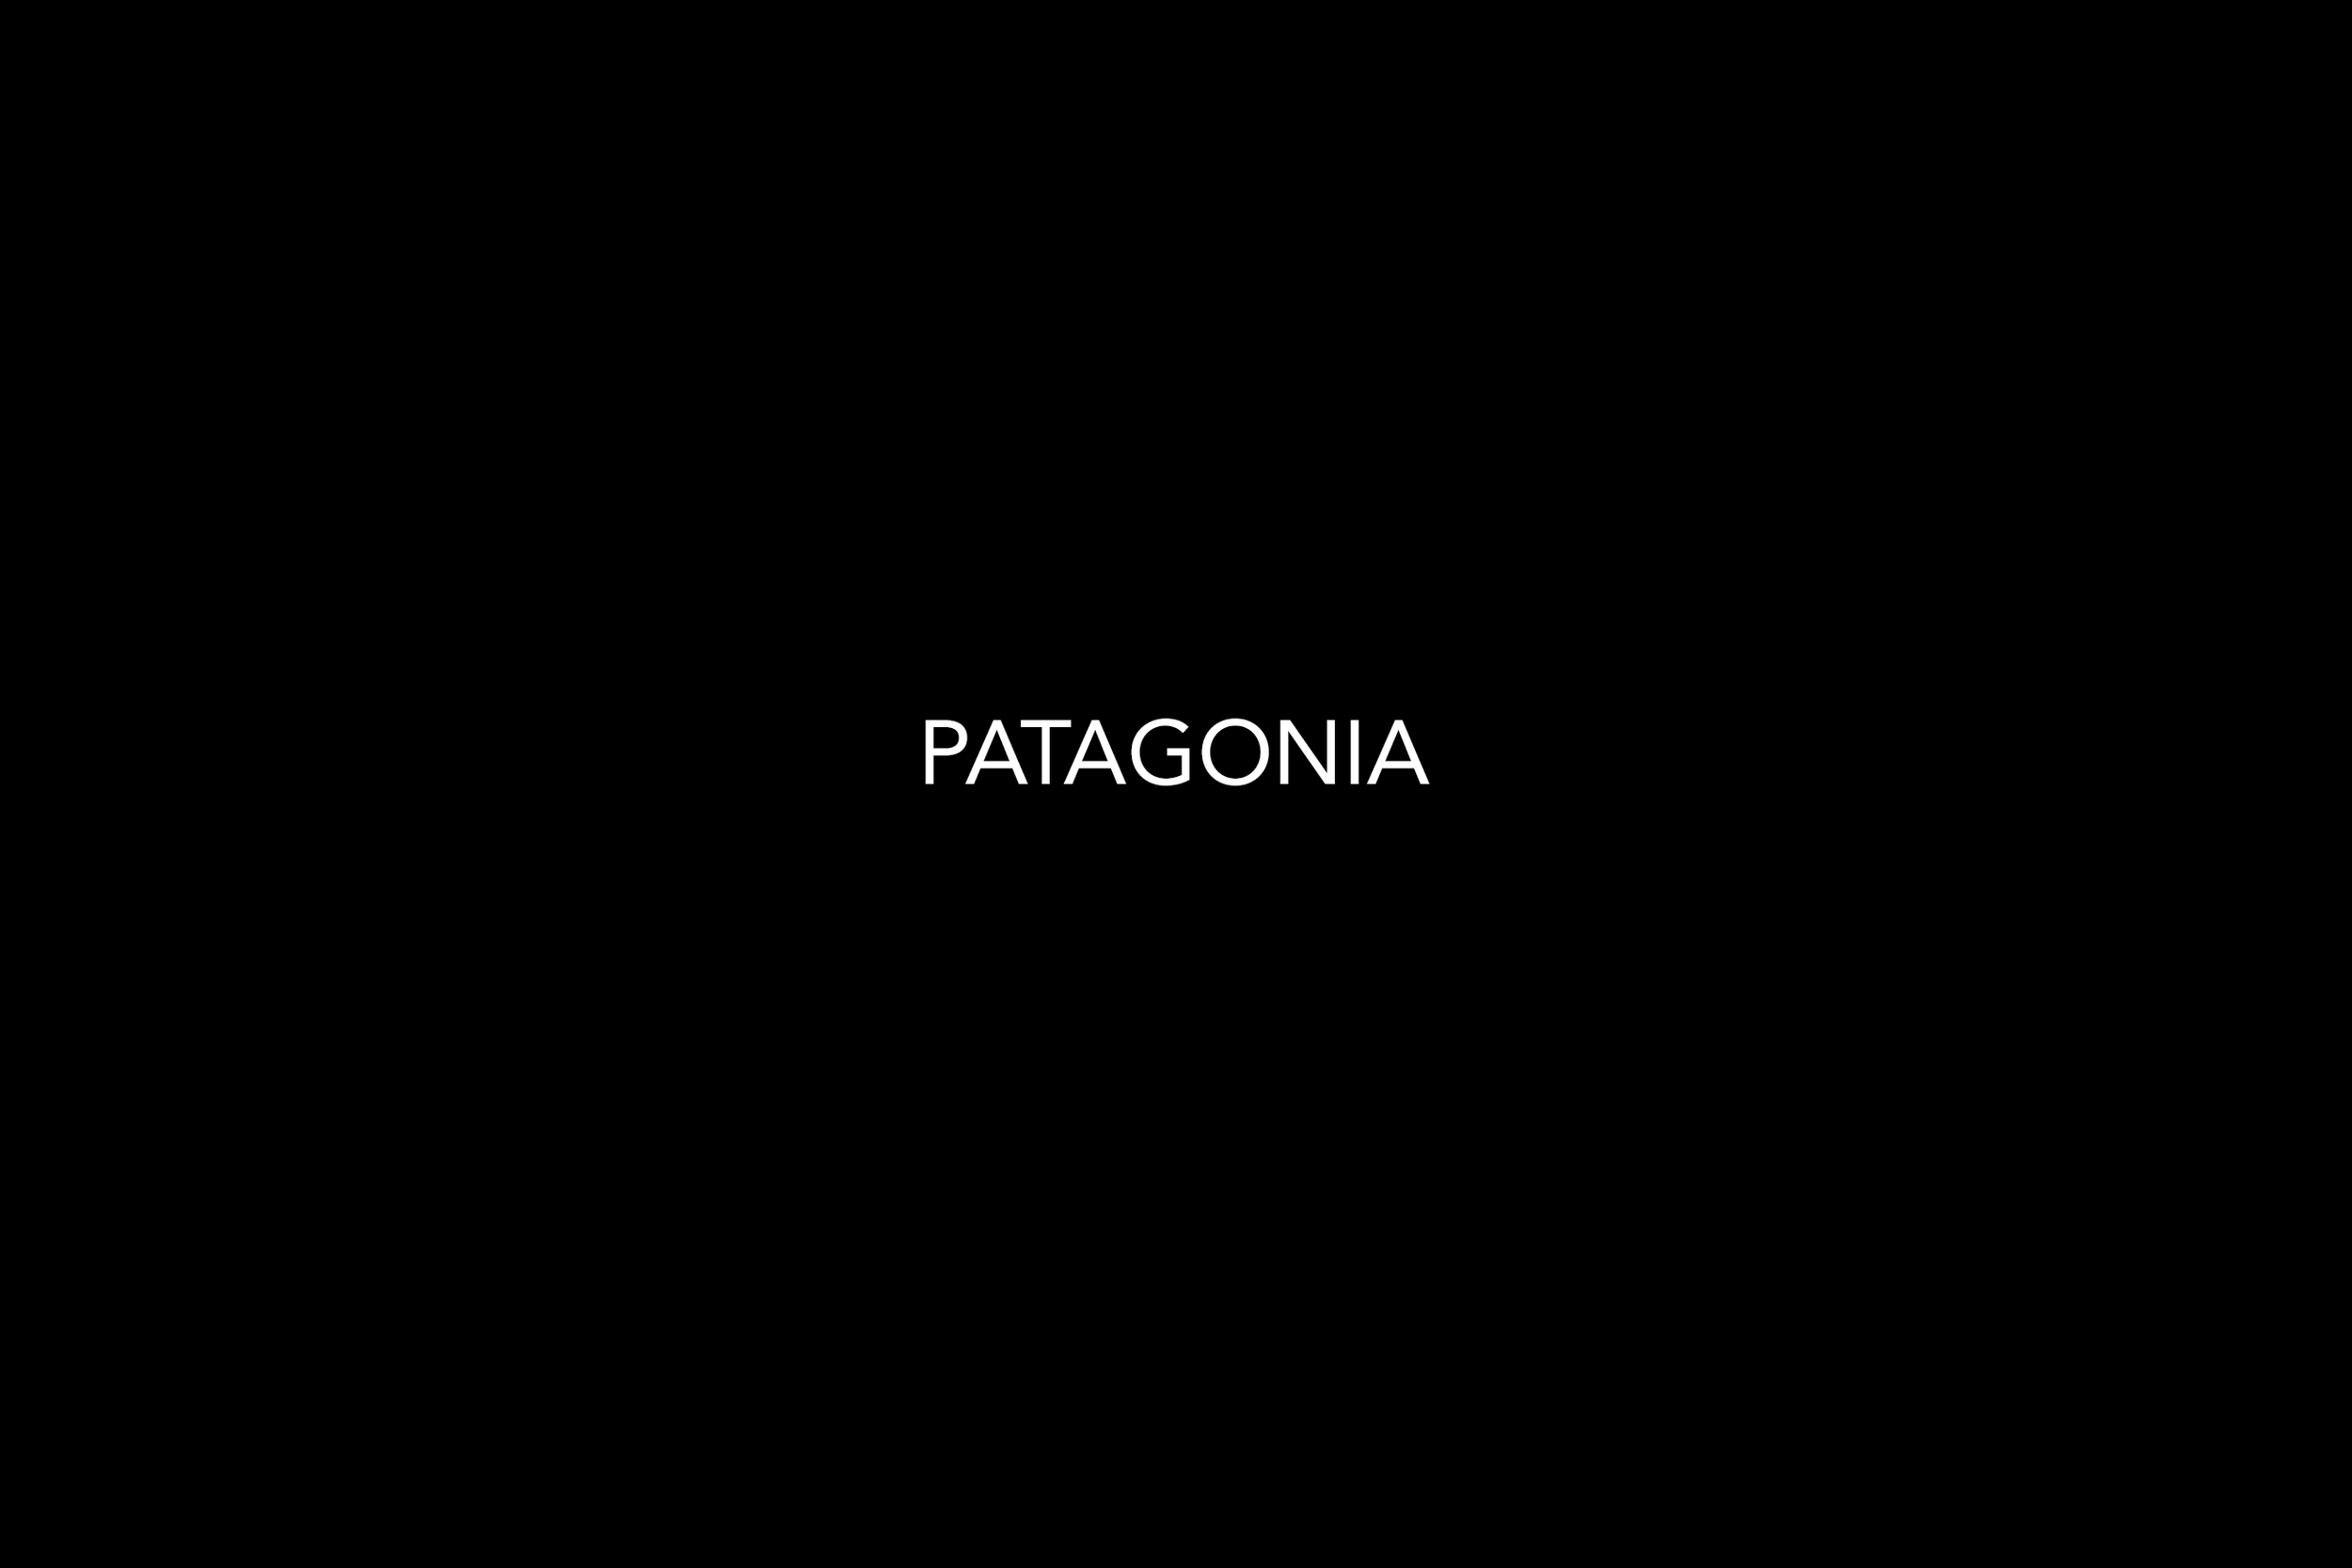 patagoniatext.png